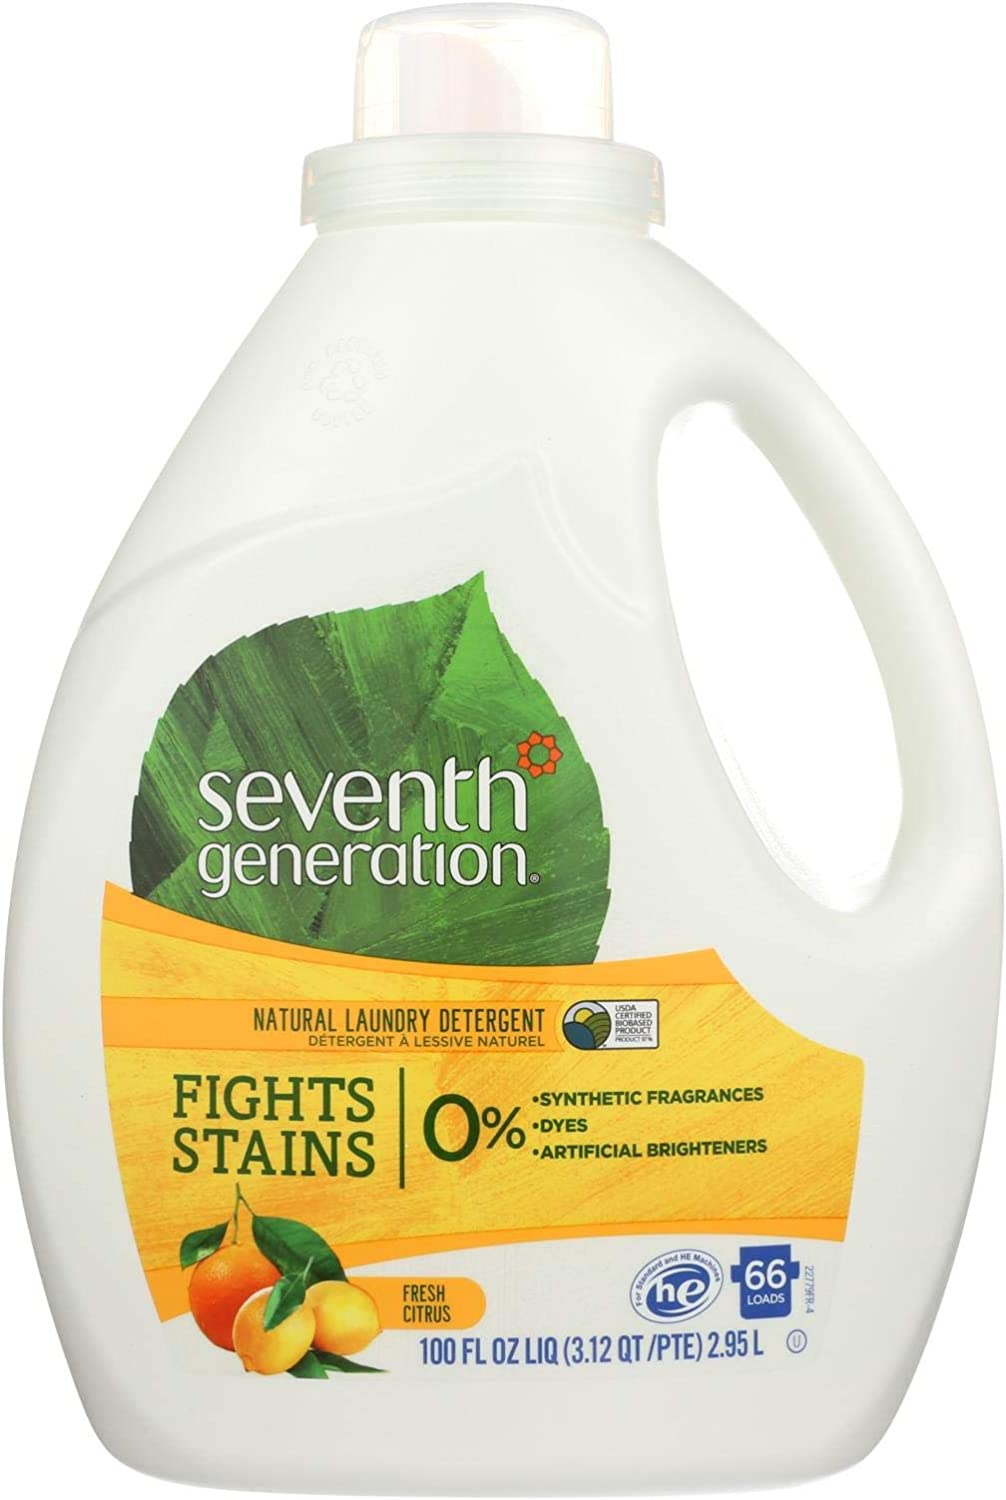 Seventh Generation Natural Laundry Detergent, Fresh Citrus, 100 oz. (Pack of 4)